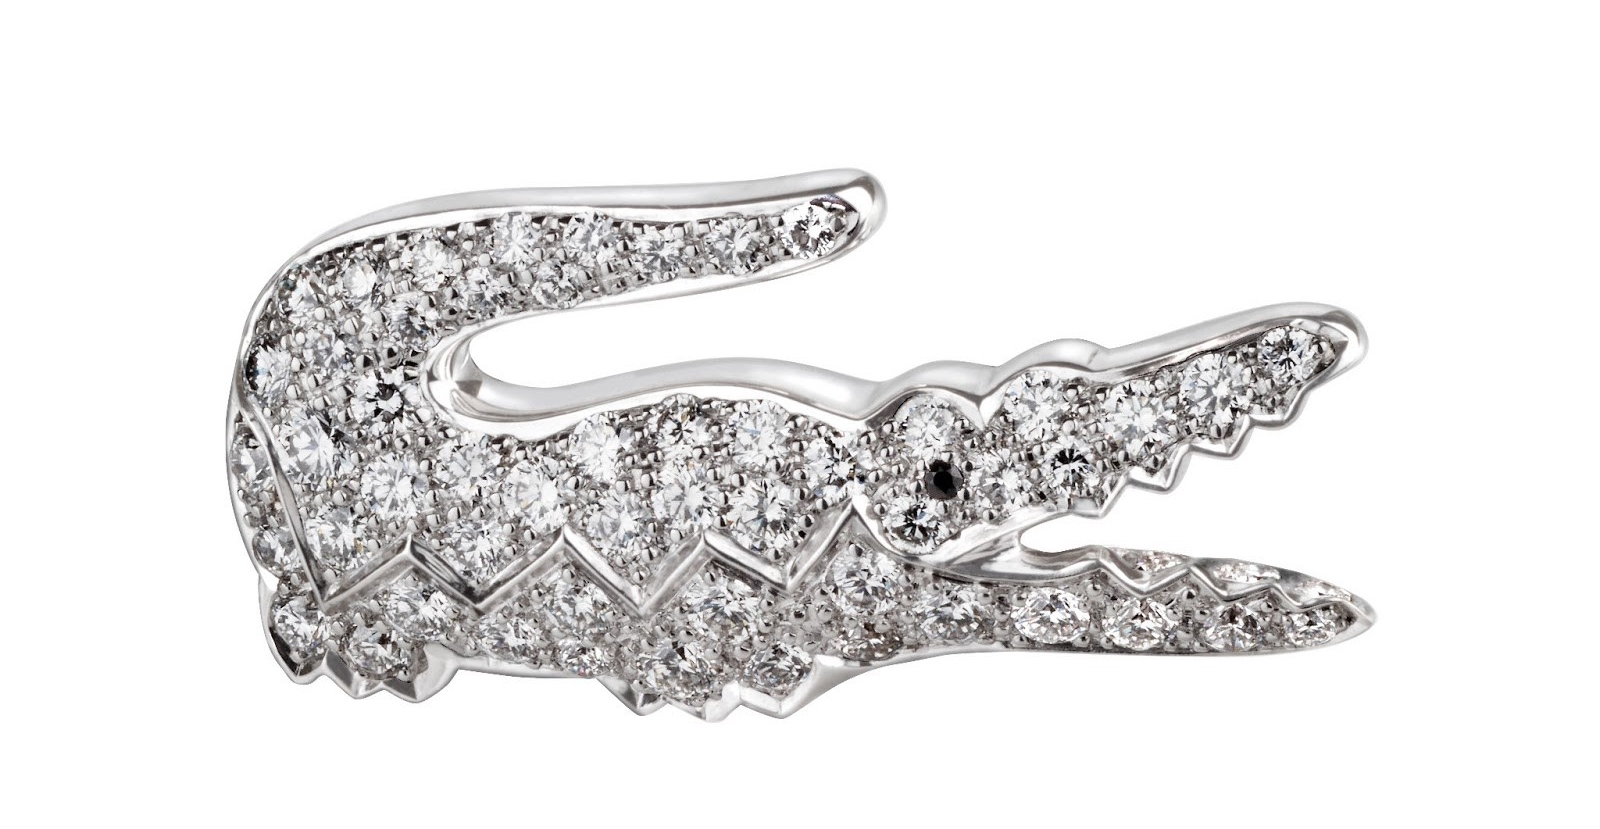 Lacoste-Maisons-Francaises-80th-Anniversary-Collection-Boucheron-Brooch-White